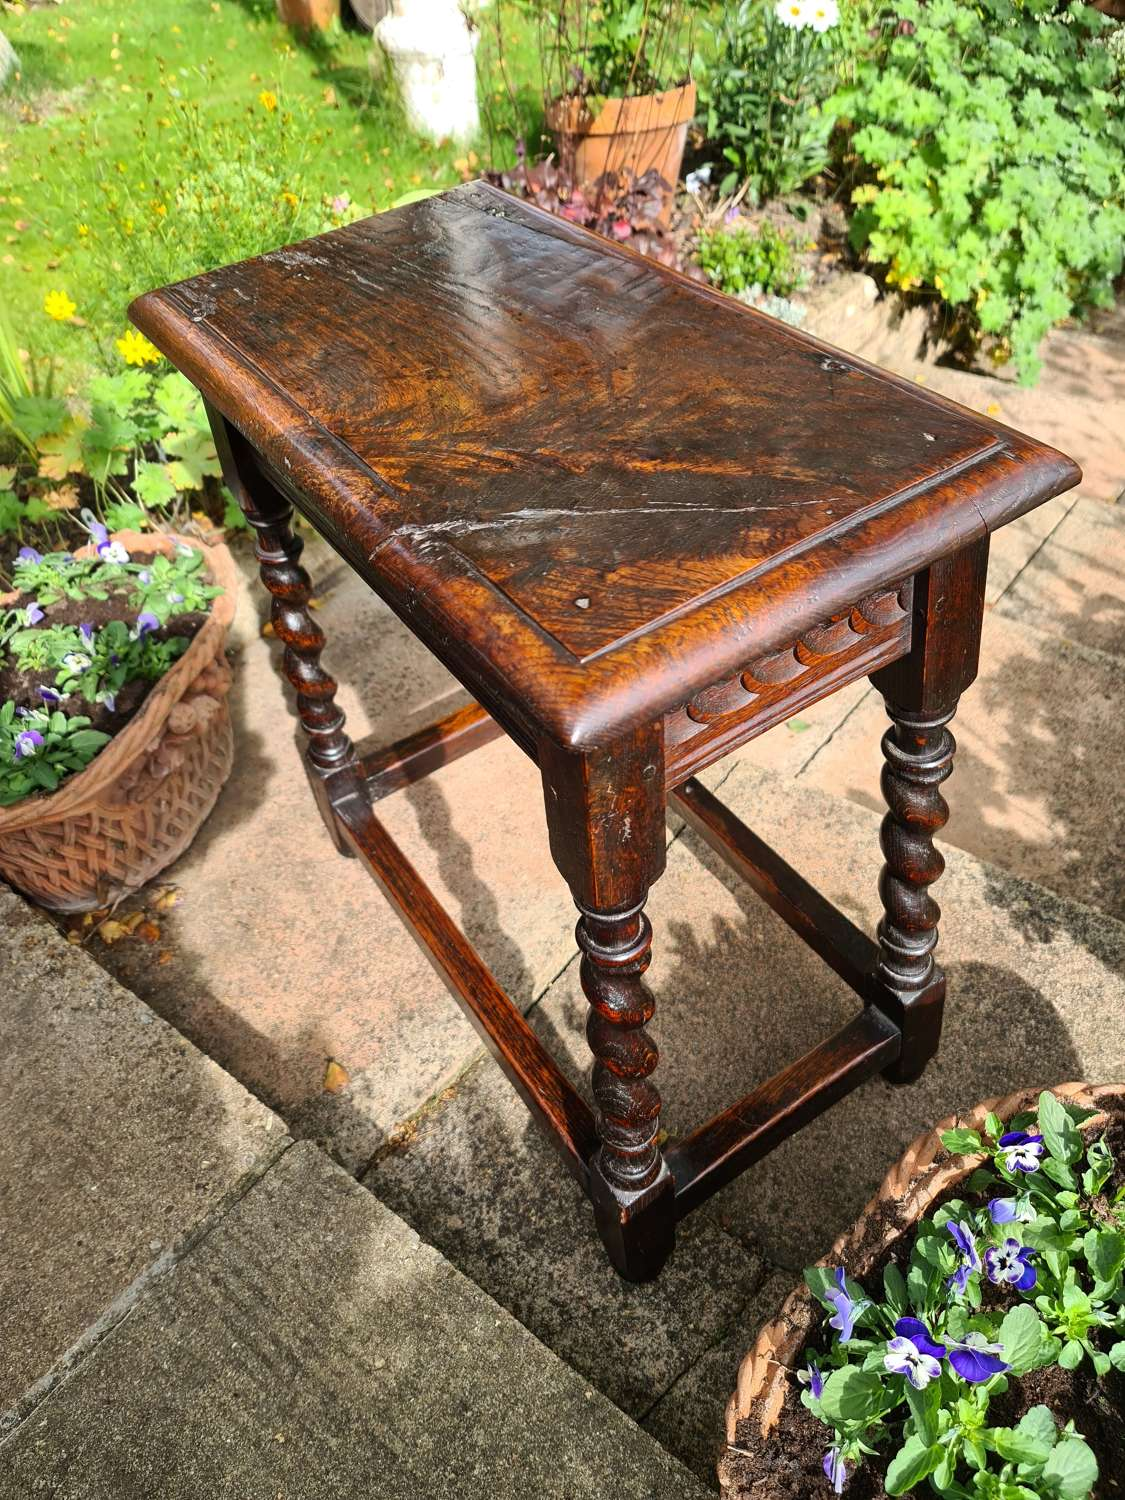 Oak Joint Stool 17th/18th Century